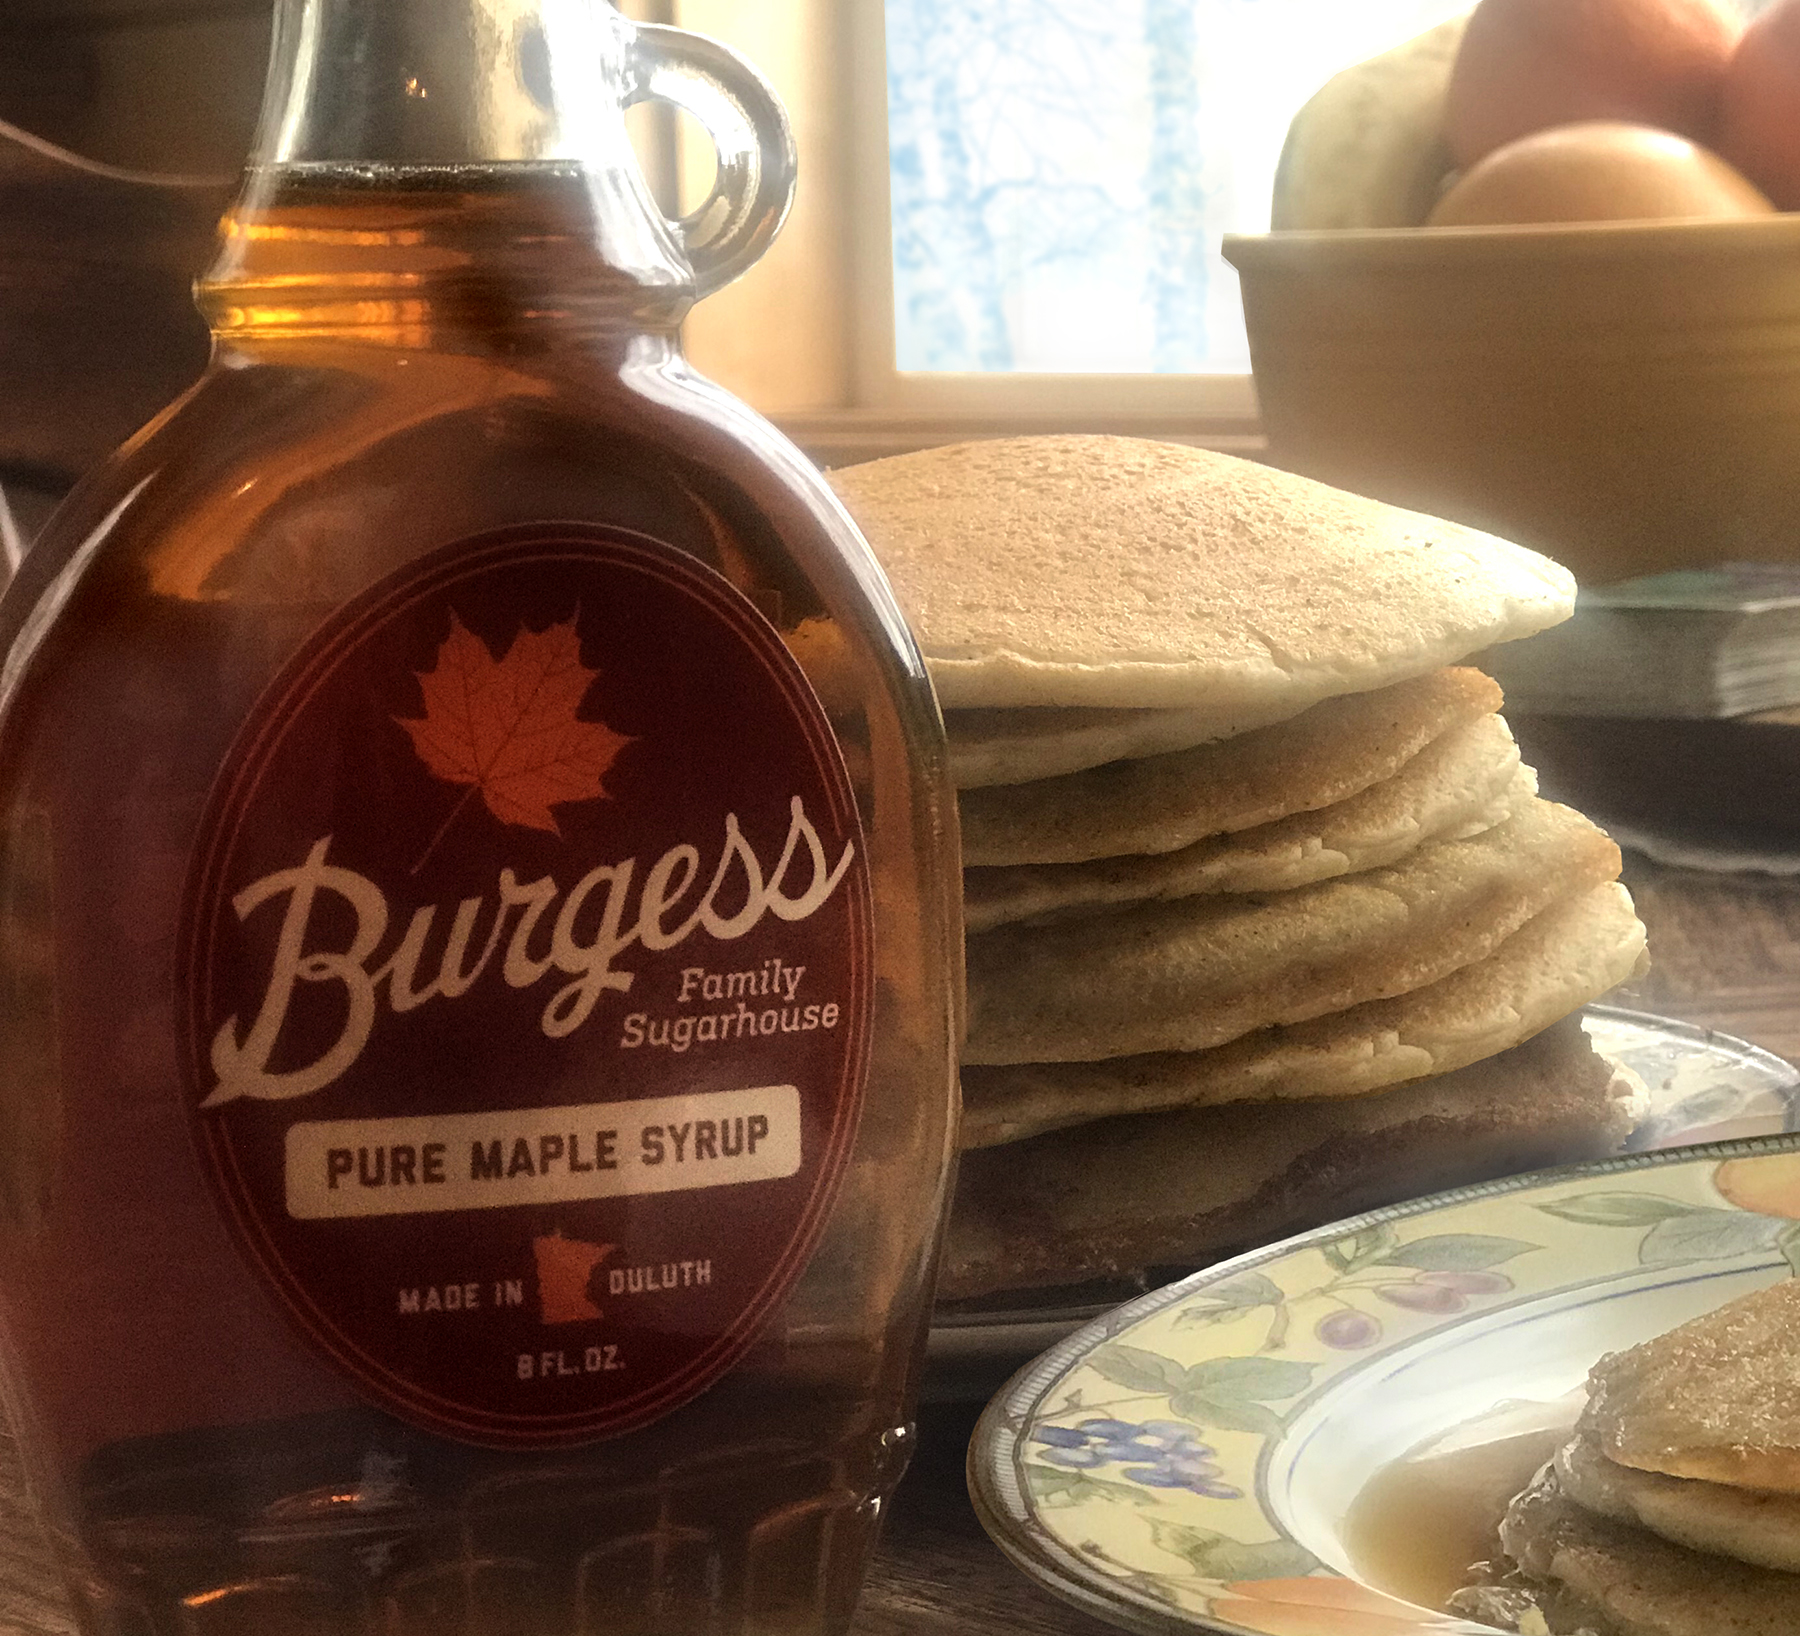 burgess syrup